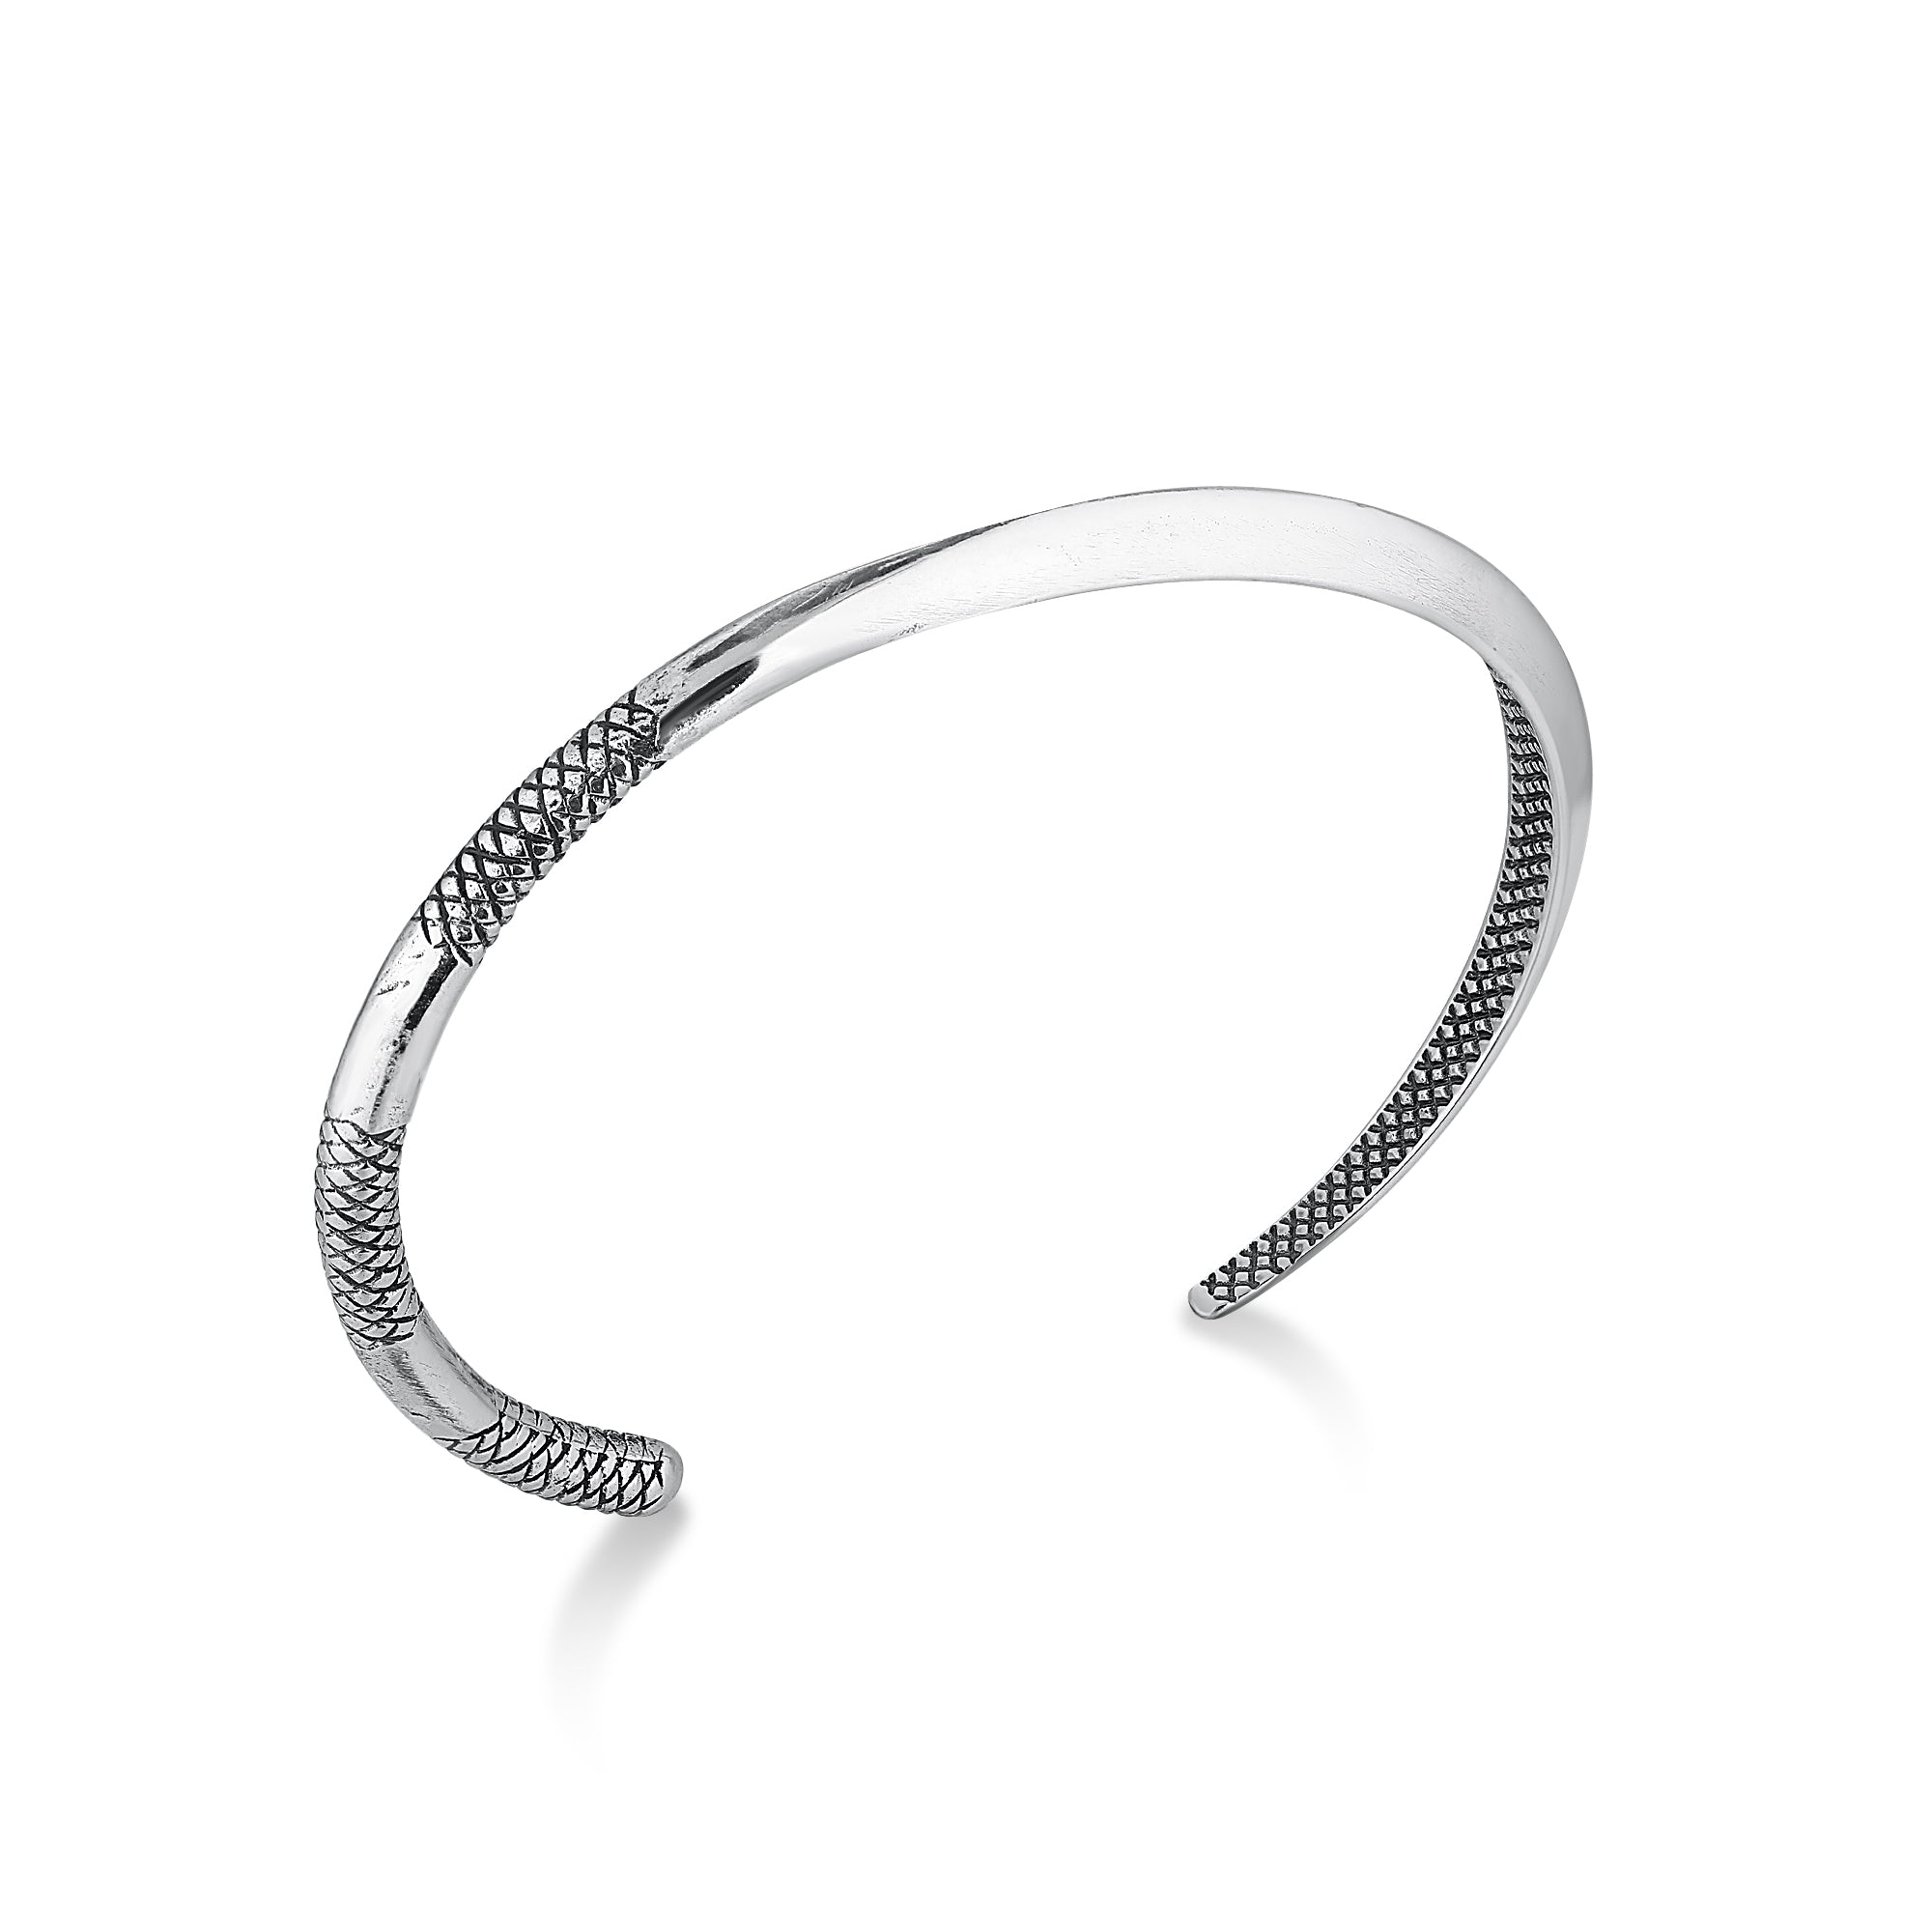 Silver Thin Cuff Bracelet with Crosshatch